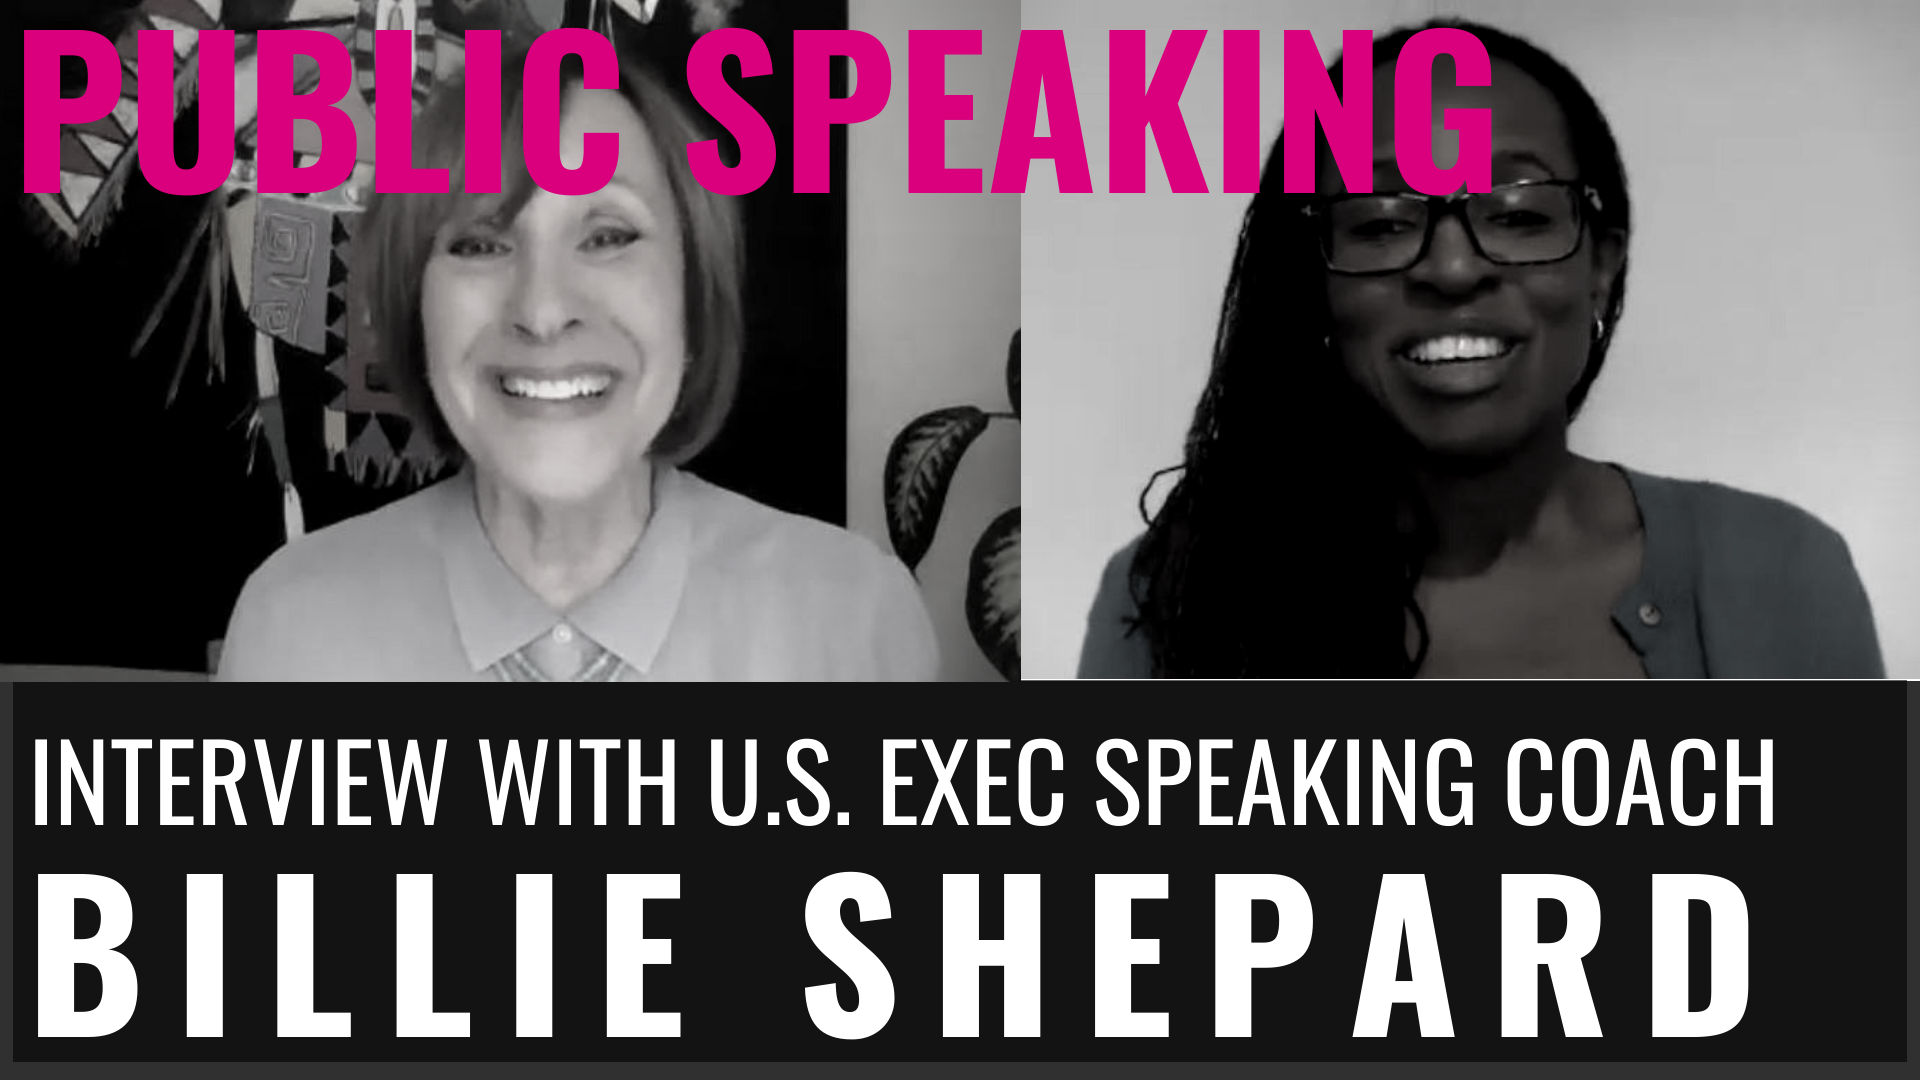 PUBLIC SPEAKING - INTERVIEW WITH US EXEC SPEAKING COACH, BILLIE SHEPARD